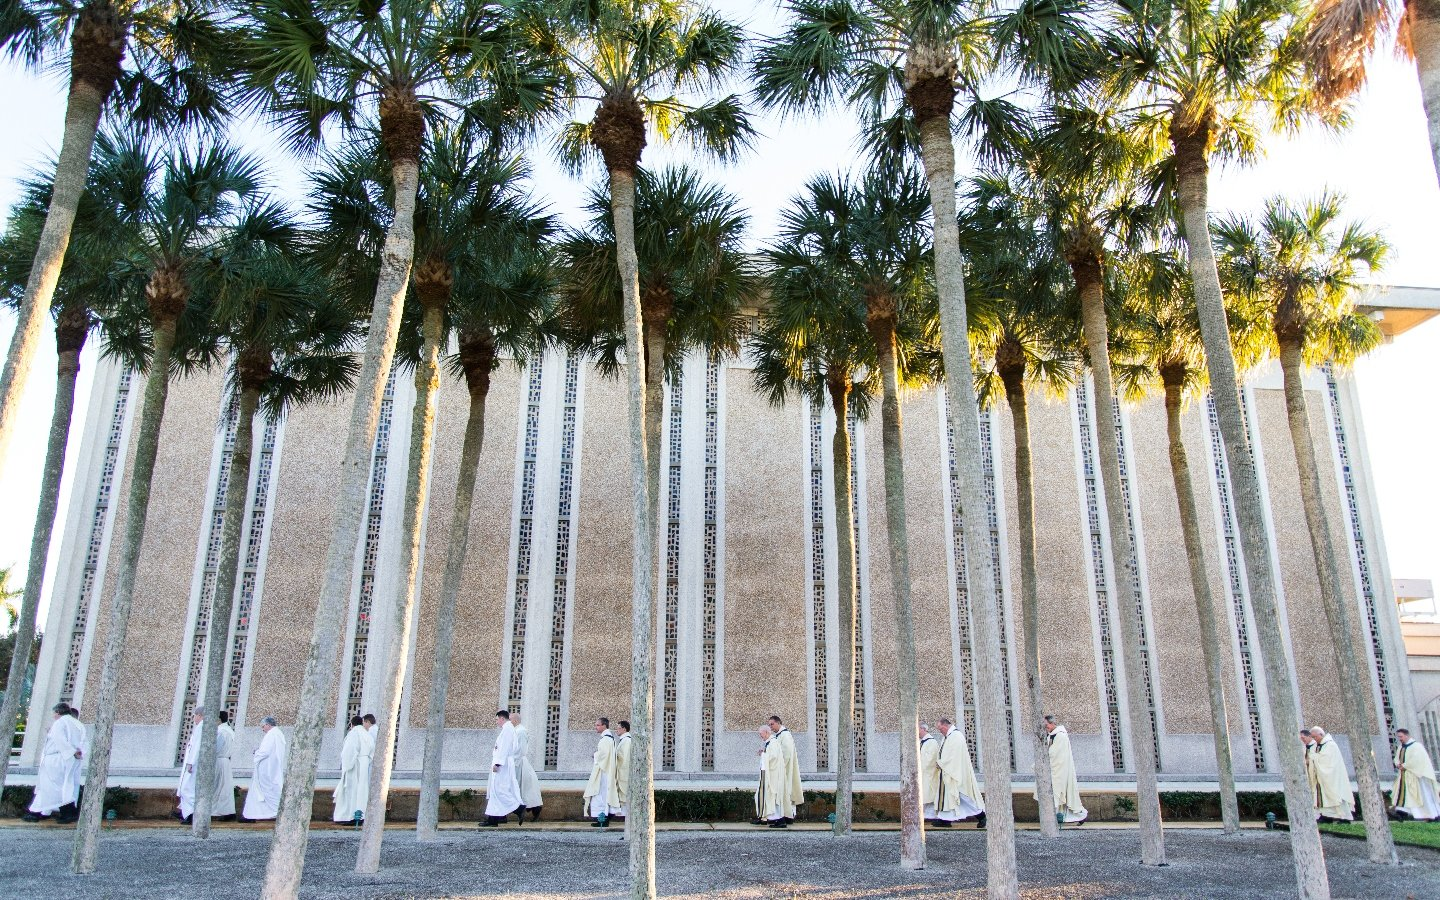 Priests walking in front of chapel and palm trees